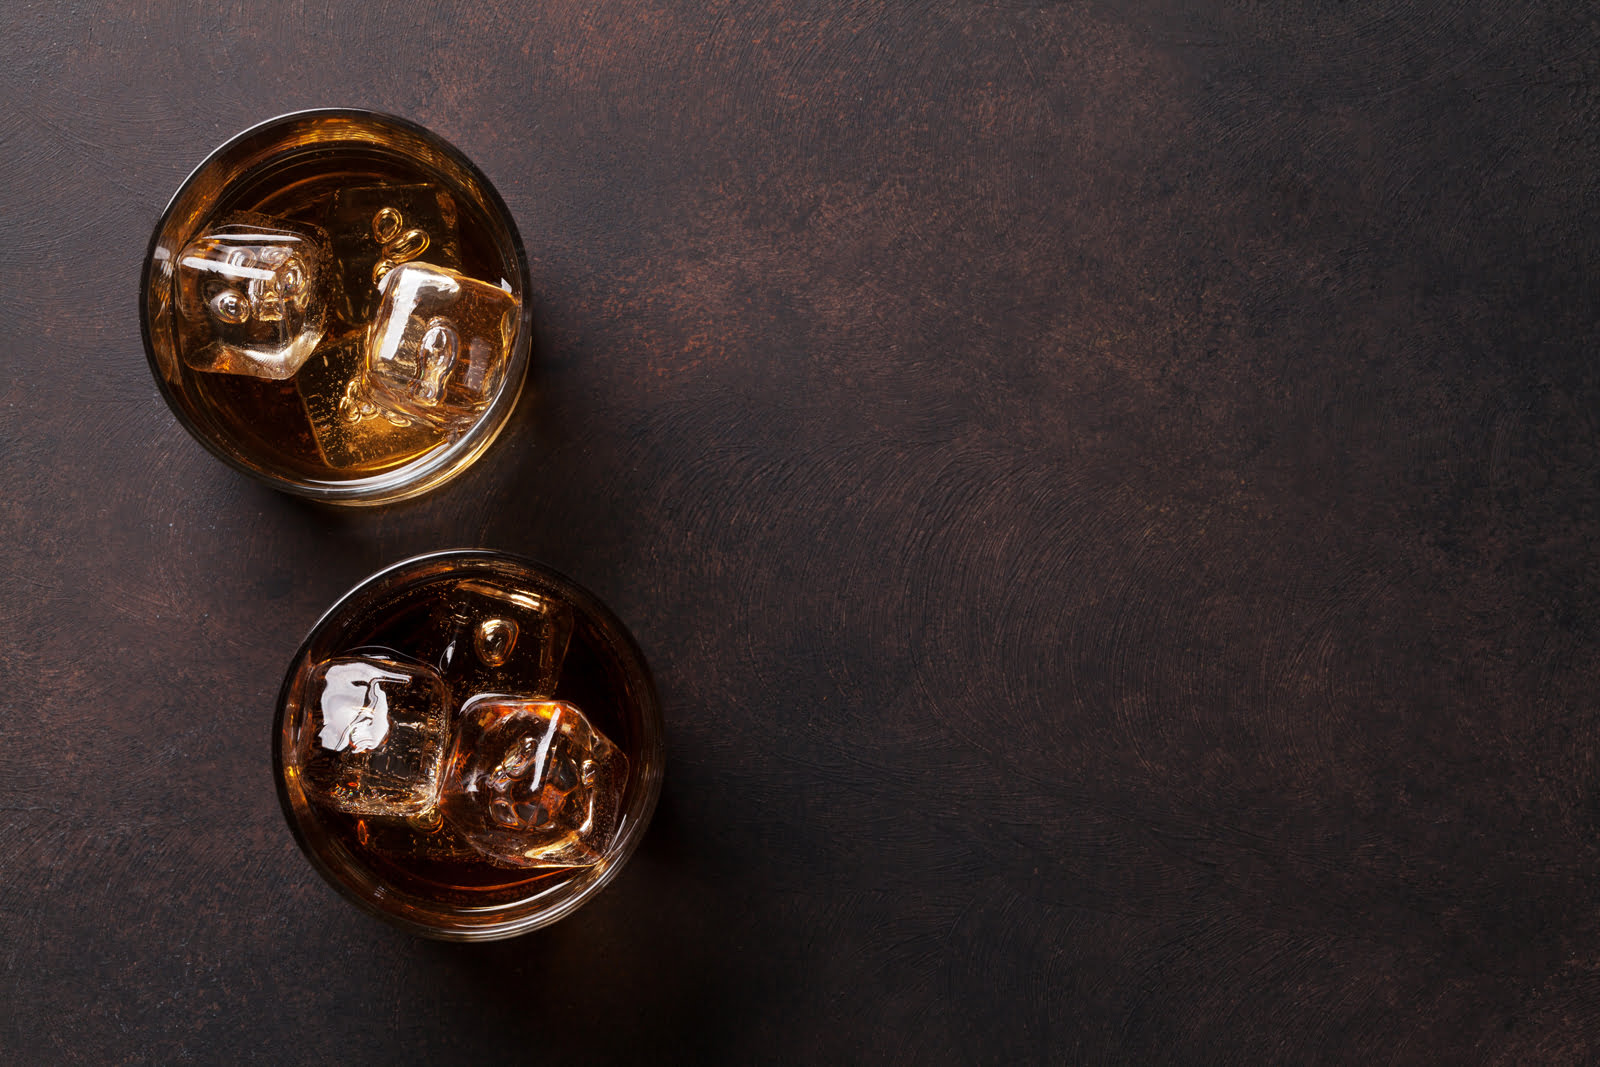 The recipe for a Jack Daniels whiskey and coke.